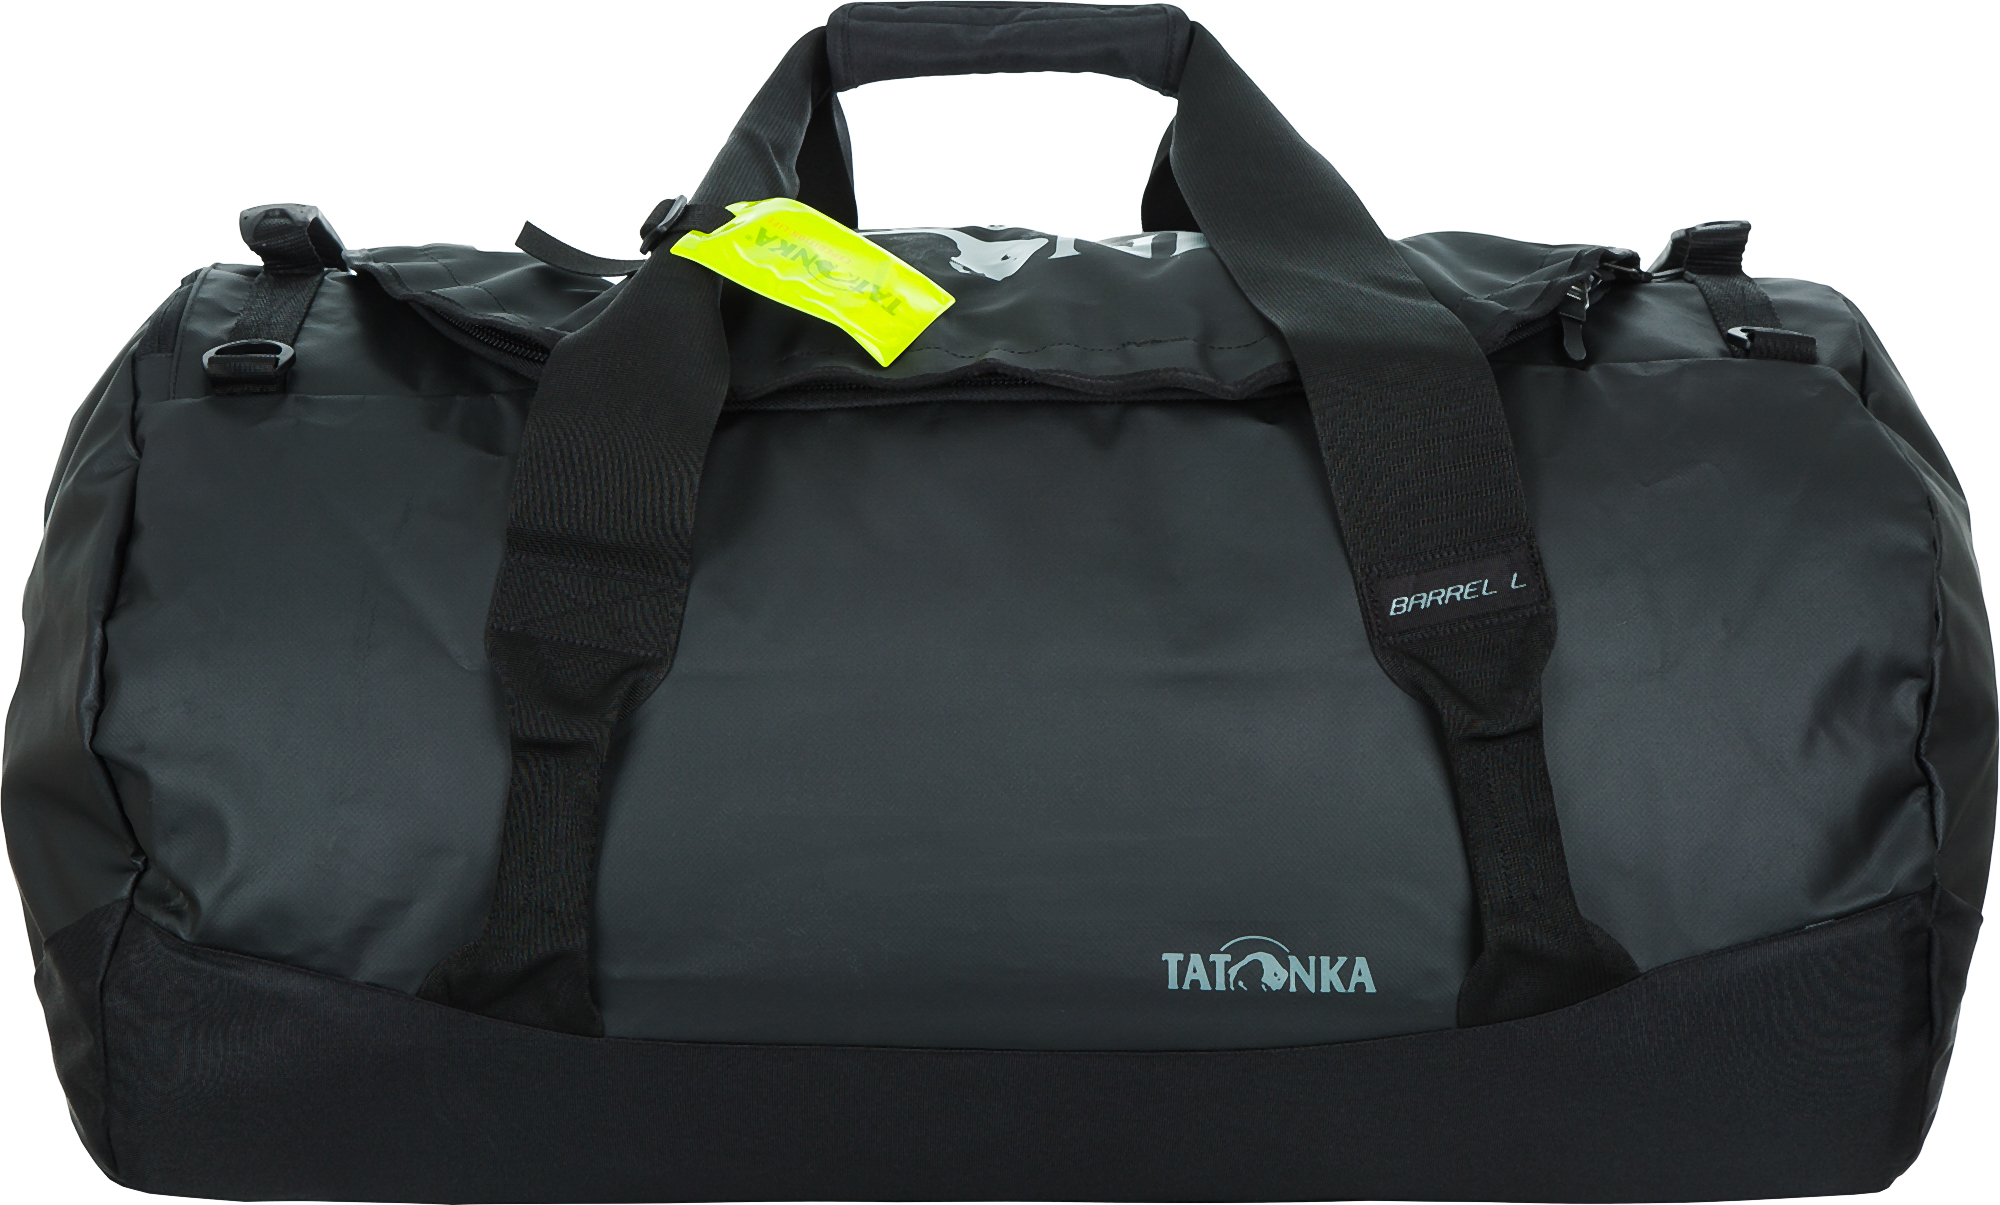 Tatonka Сумка Tatonka BARREL XL 110 л tatonka sherpa dome plus